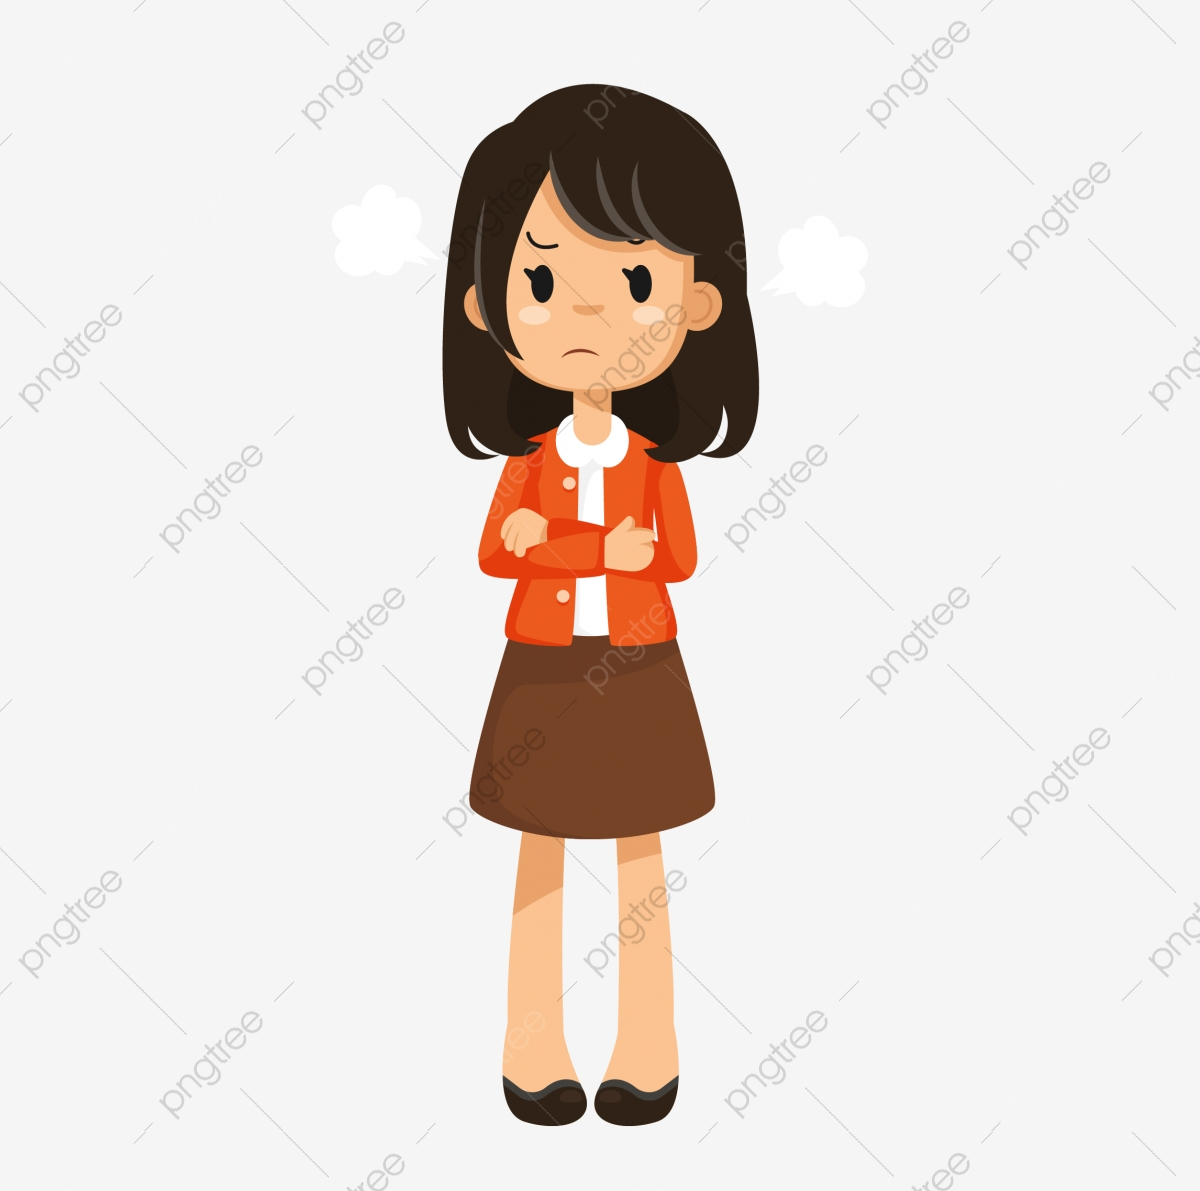 Pissed Off Angry Expression Q Version Q Version Girl Lovely Cute Girl Cartoon Png And Vector With Transparent Background For Free Download